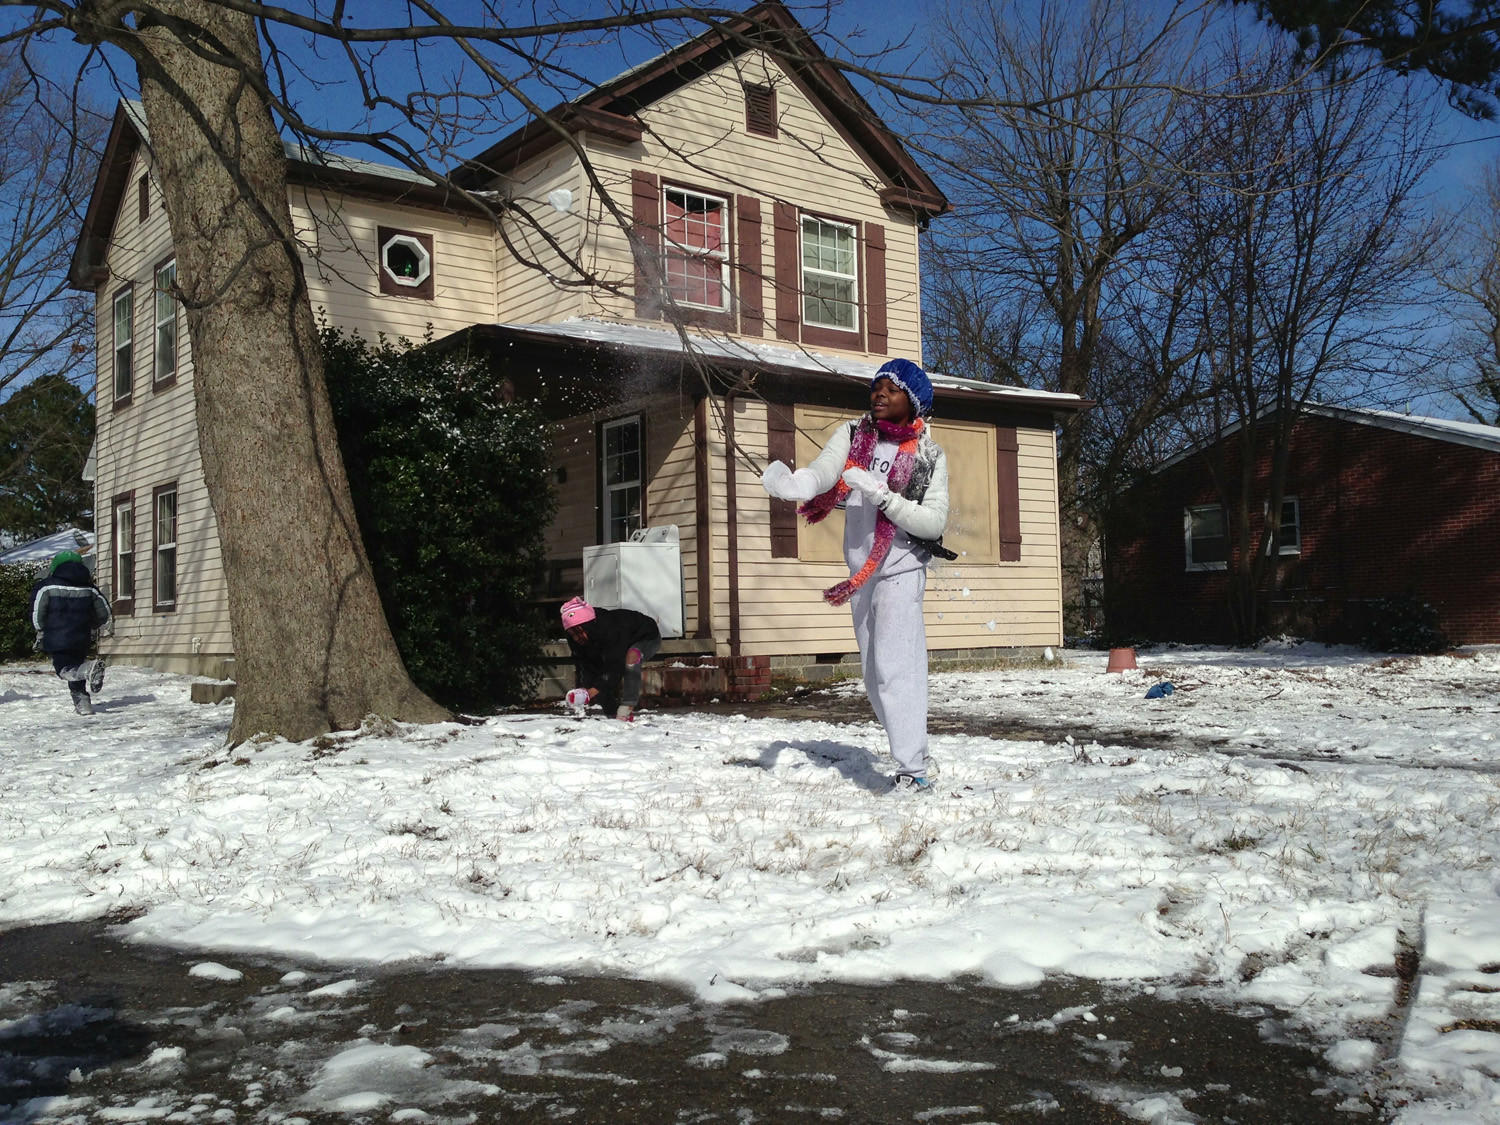 Hampton High School student China Armstrong, 15, throws snowballs with friends on a snow day Wednesday.